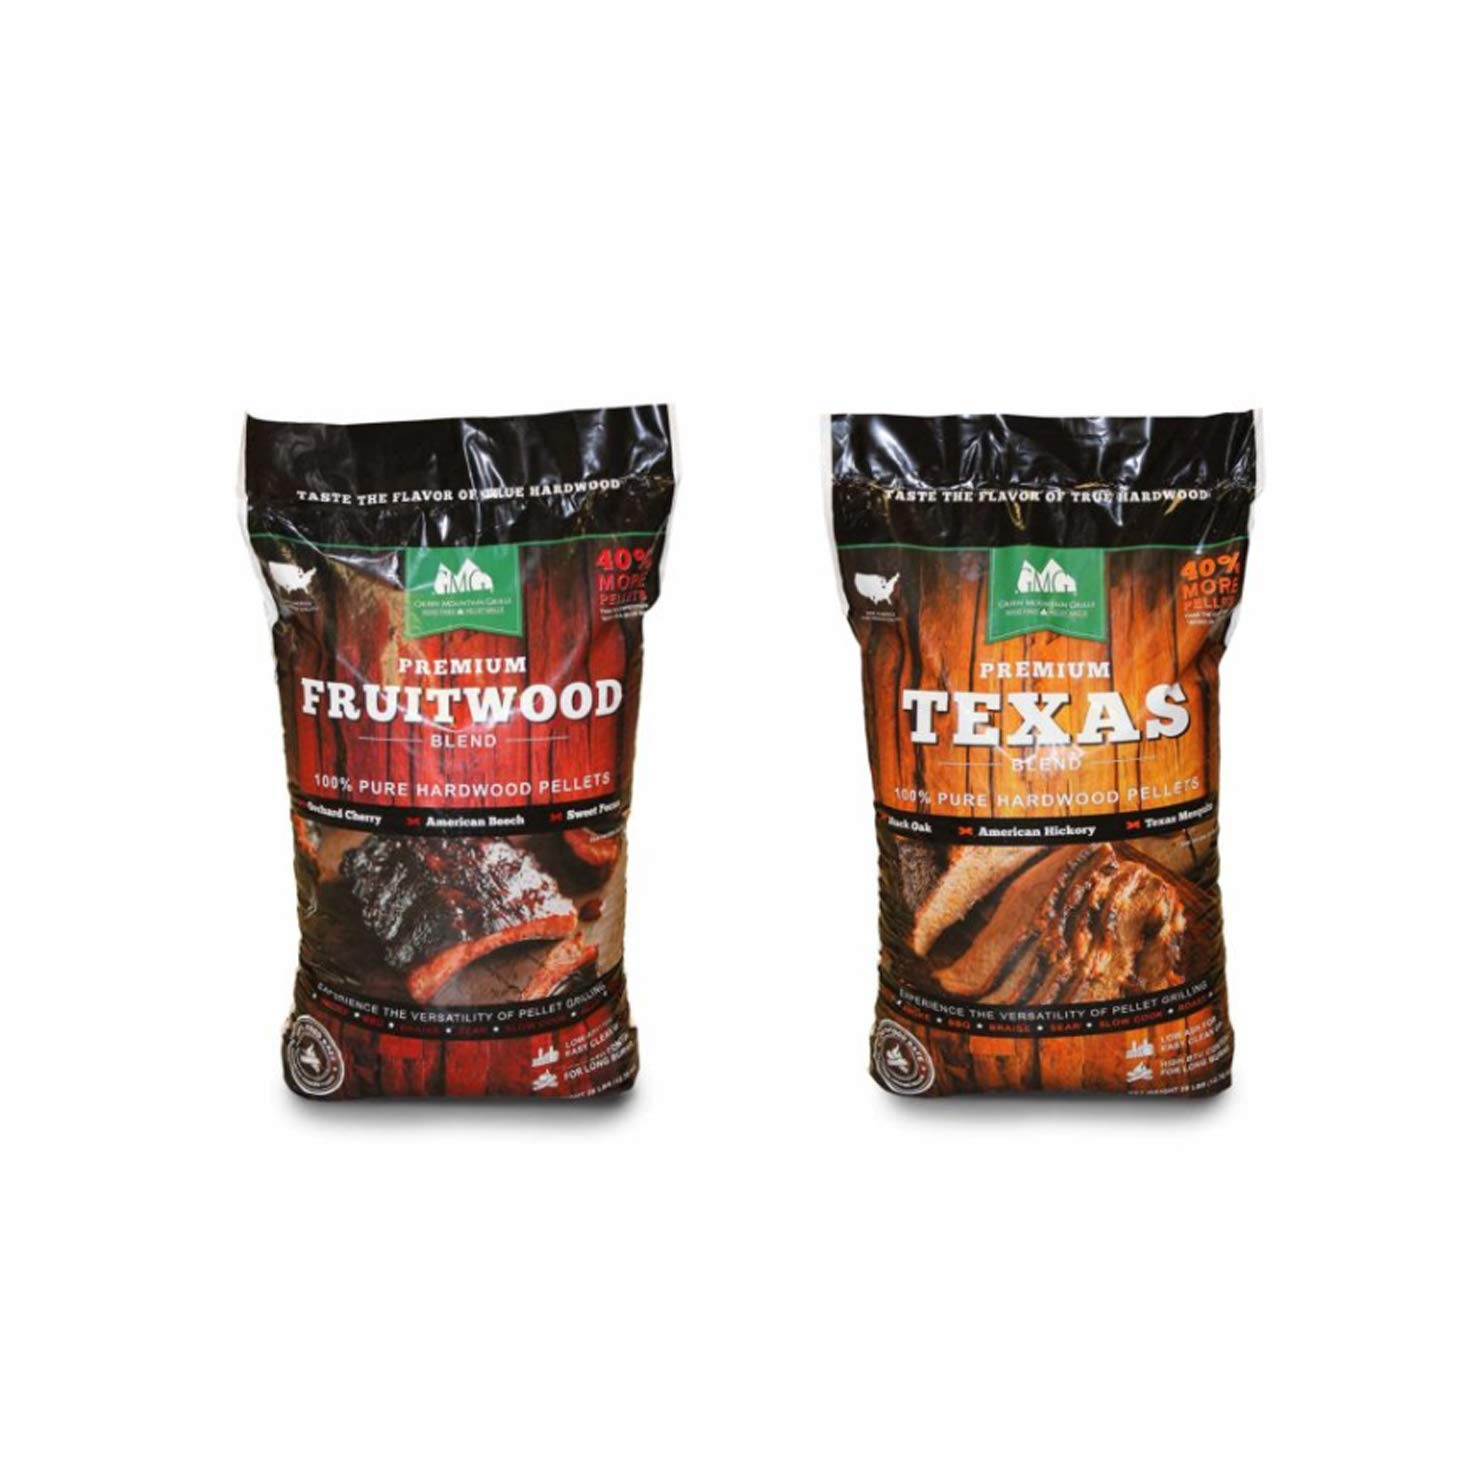 Green Mountain Grills Premium Texas & Fruitwood Hardwood Grill Cooking Pellets by Green Mountain Grills